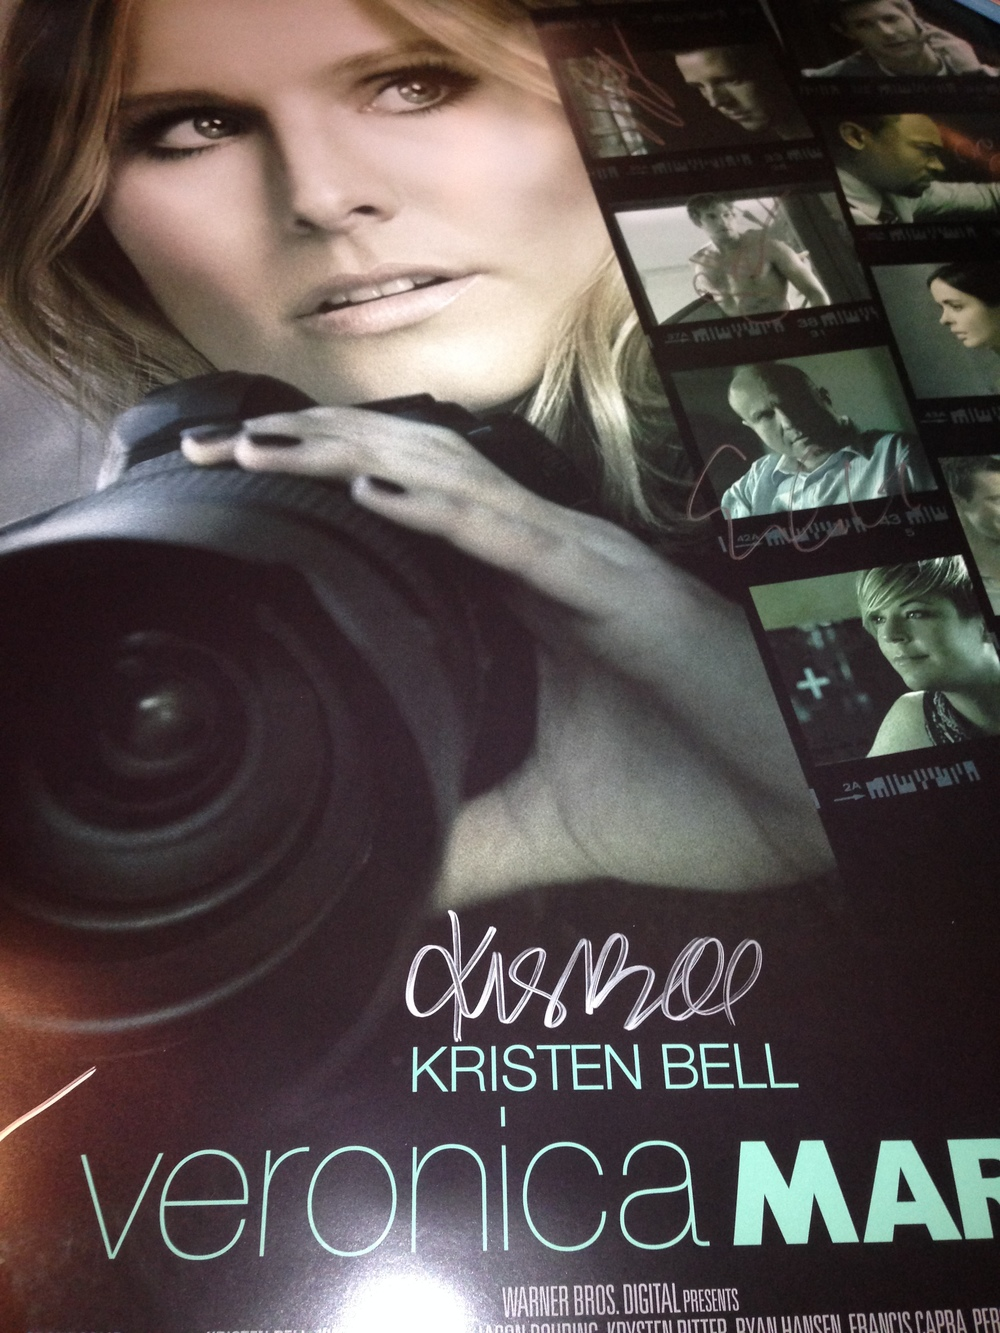 The luminous Kristen Bell kicking A and taking photos